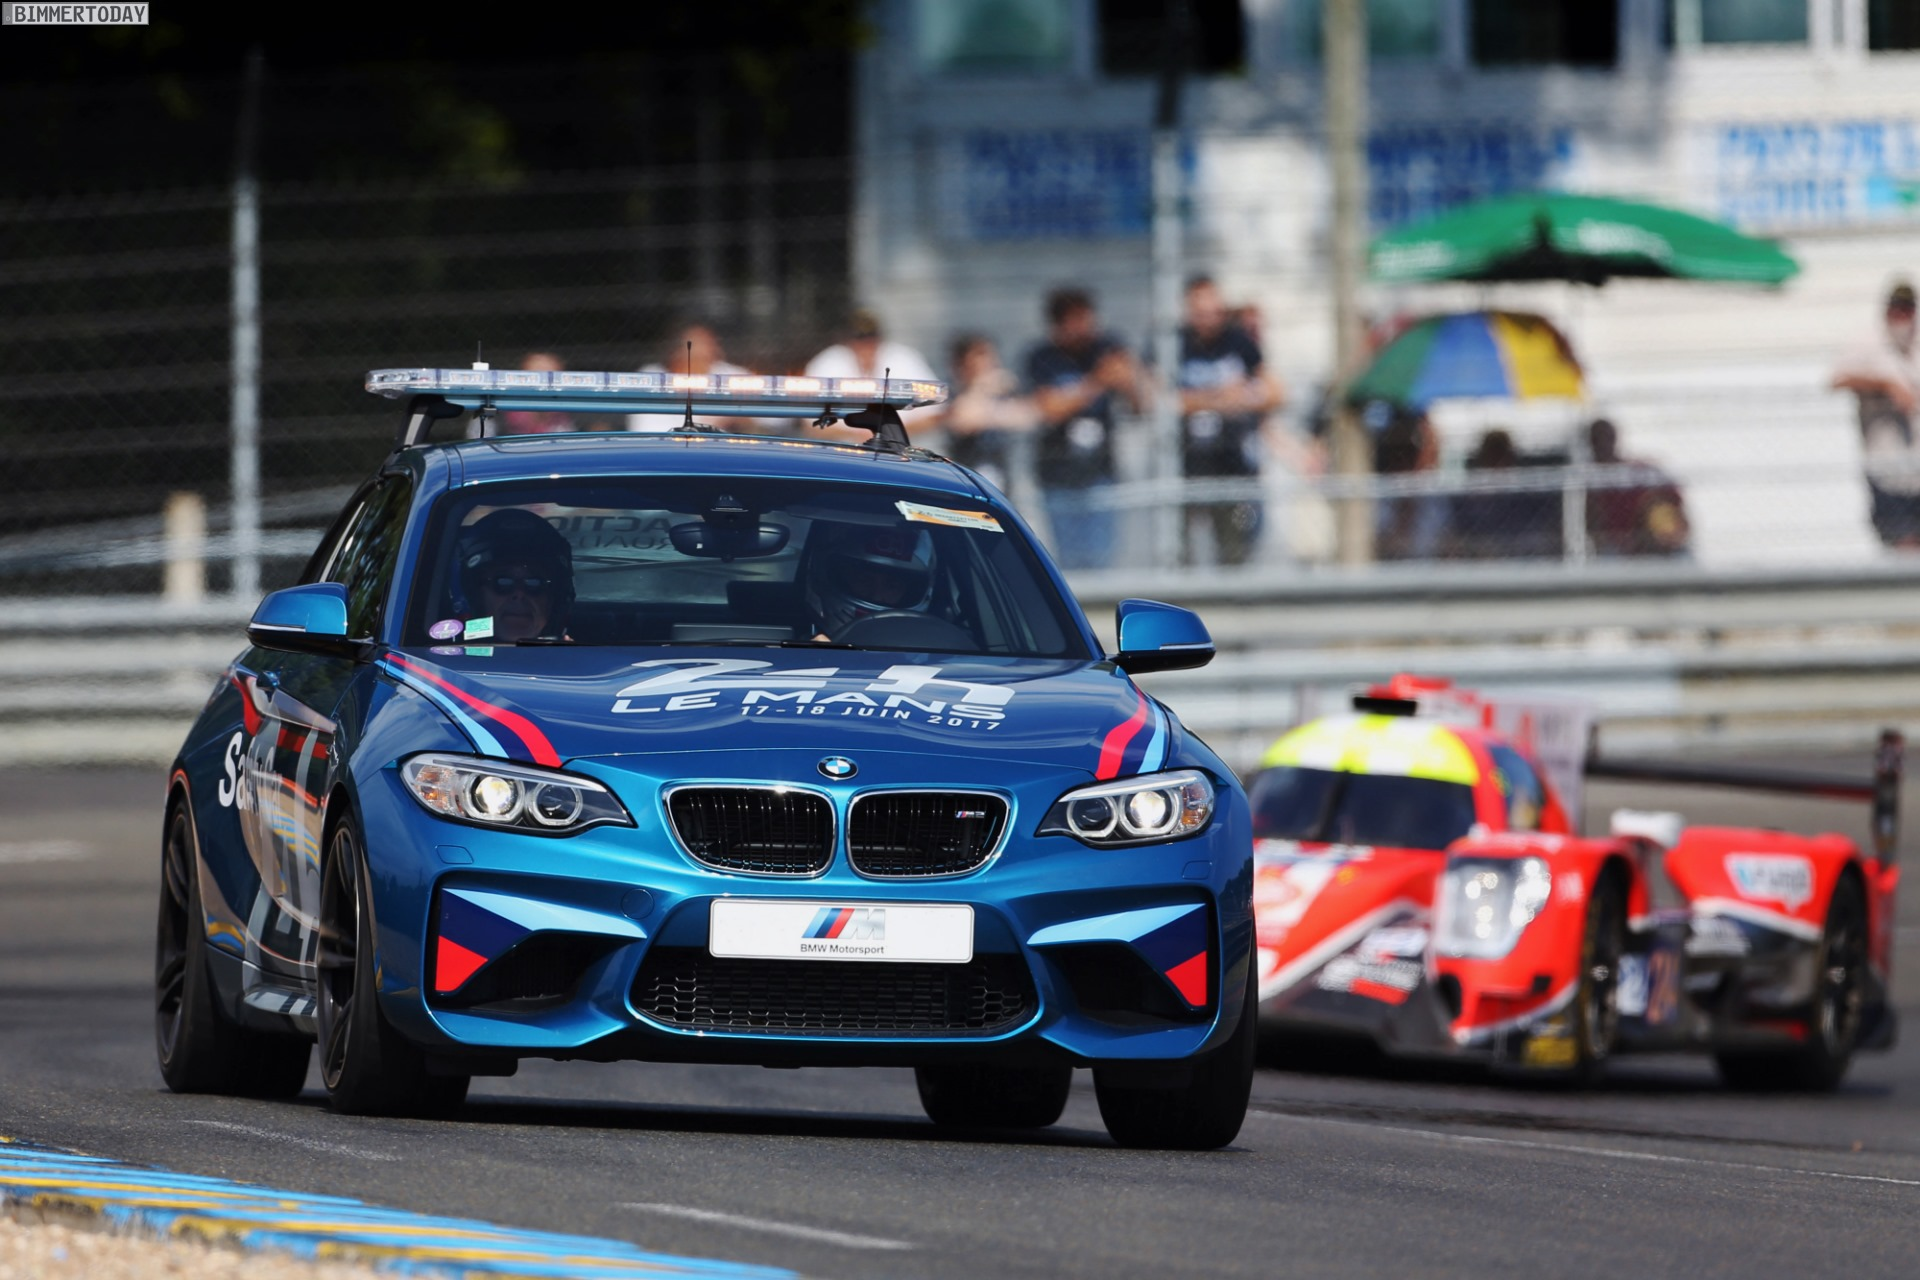 Bmw Provides The Official Fleet Of Cars At 24 Hrs Of Le Mans